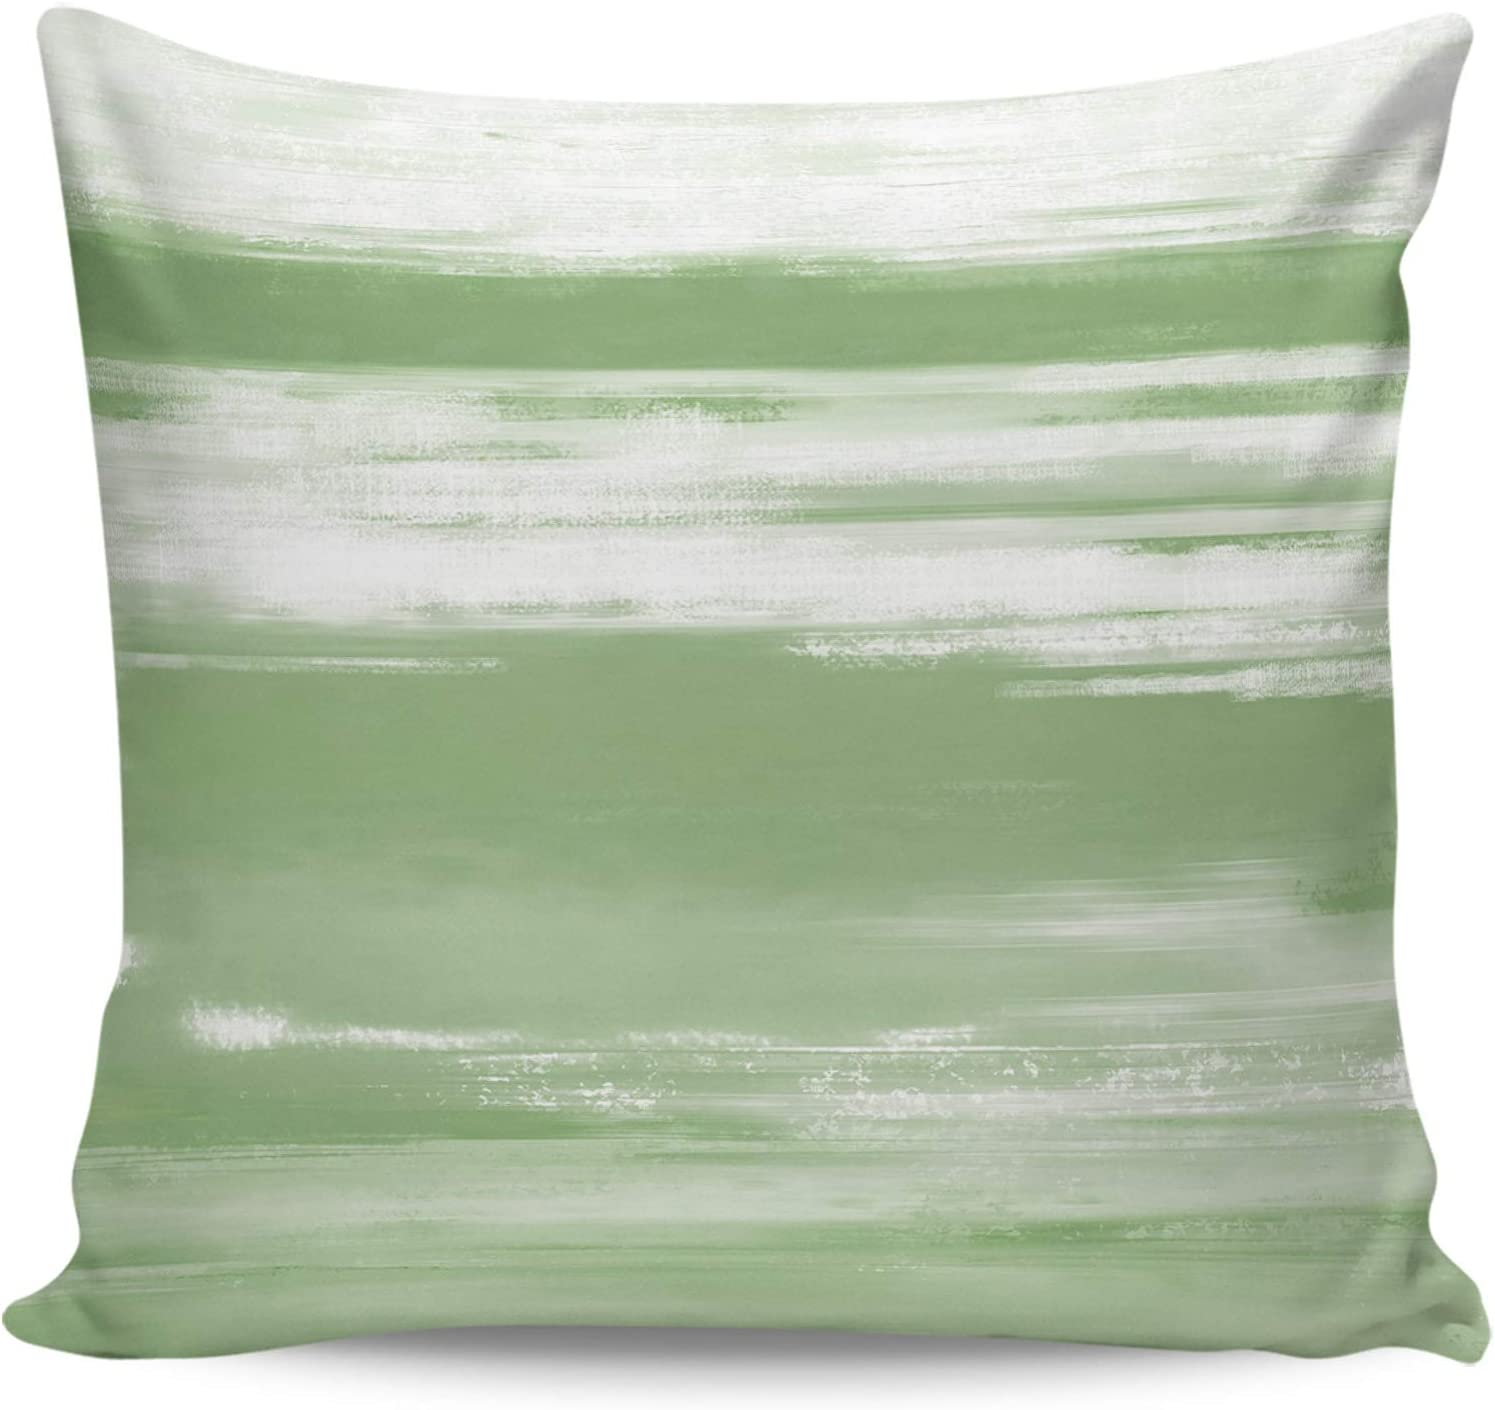 Decorative Throw Pillow Ranking TOP7 Cover Green Plush Short Texture Abstract Fashionable